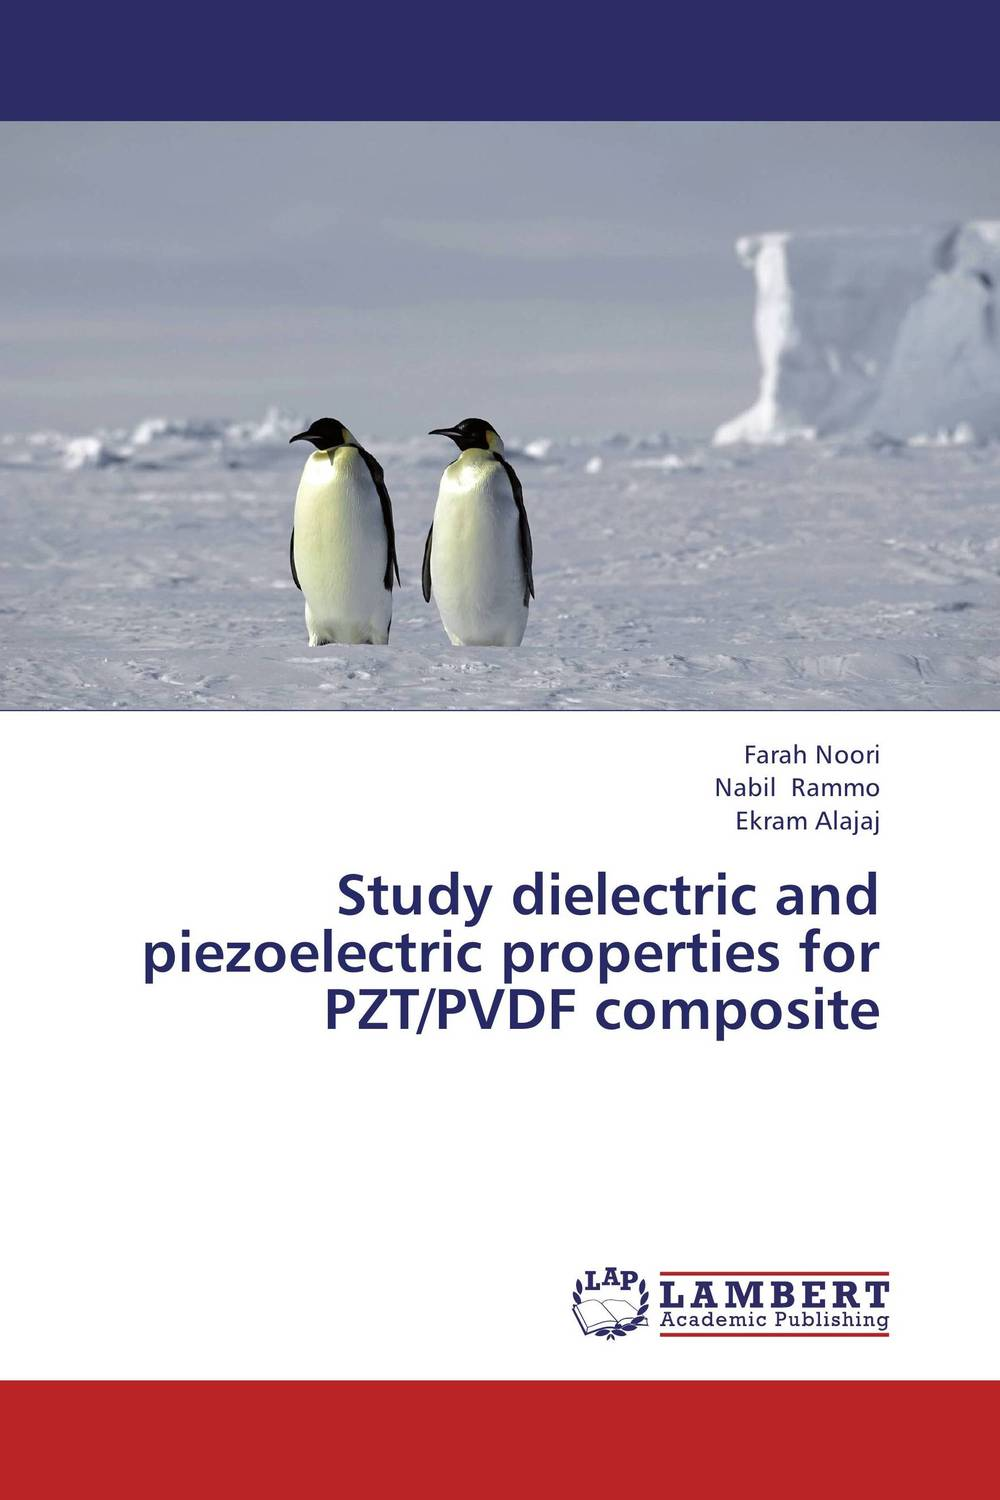 Study dielectric and piezoelectric properties for PZT/PVDF composite optimization modeling and mathematical analysis